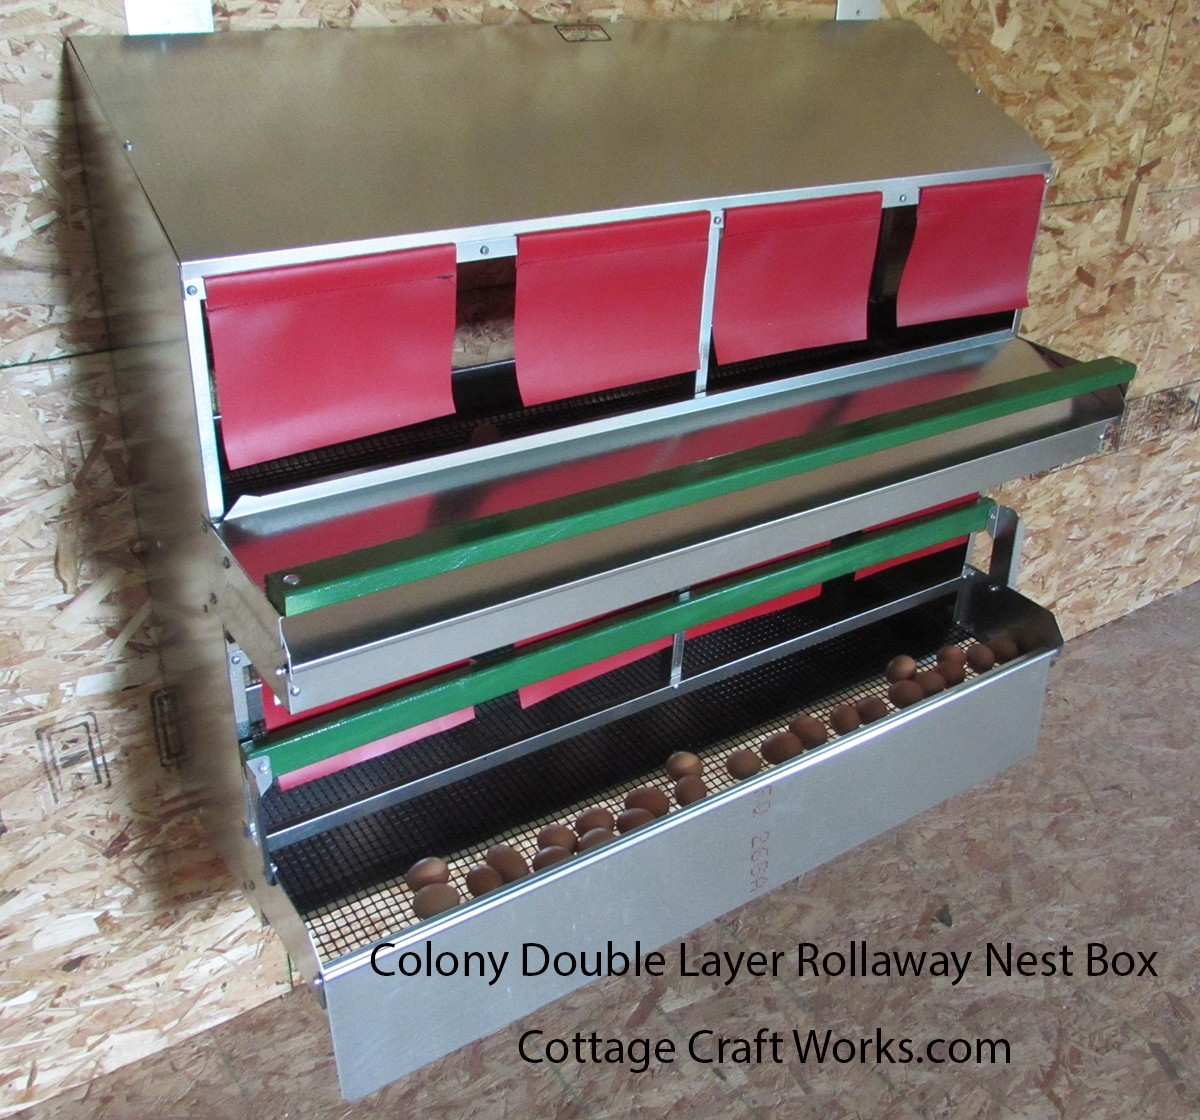 Colony Double Layer Rollaway Nesting Box